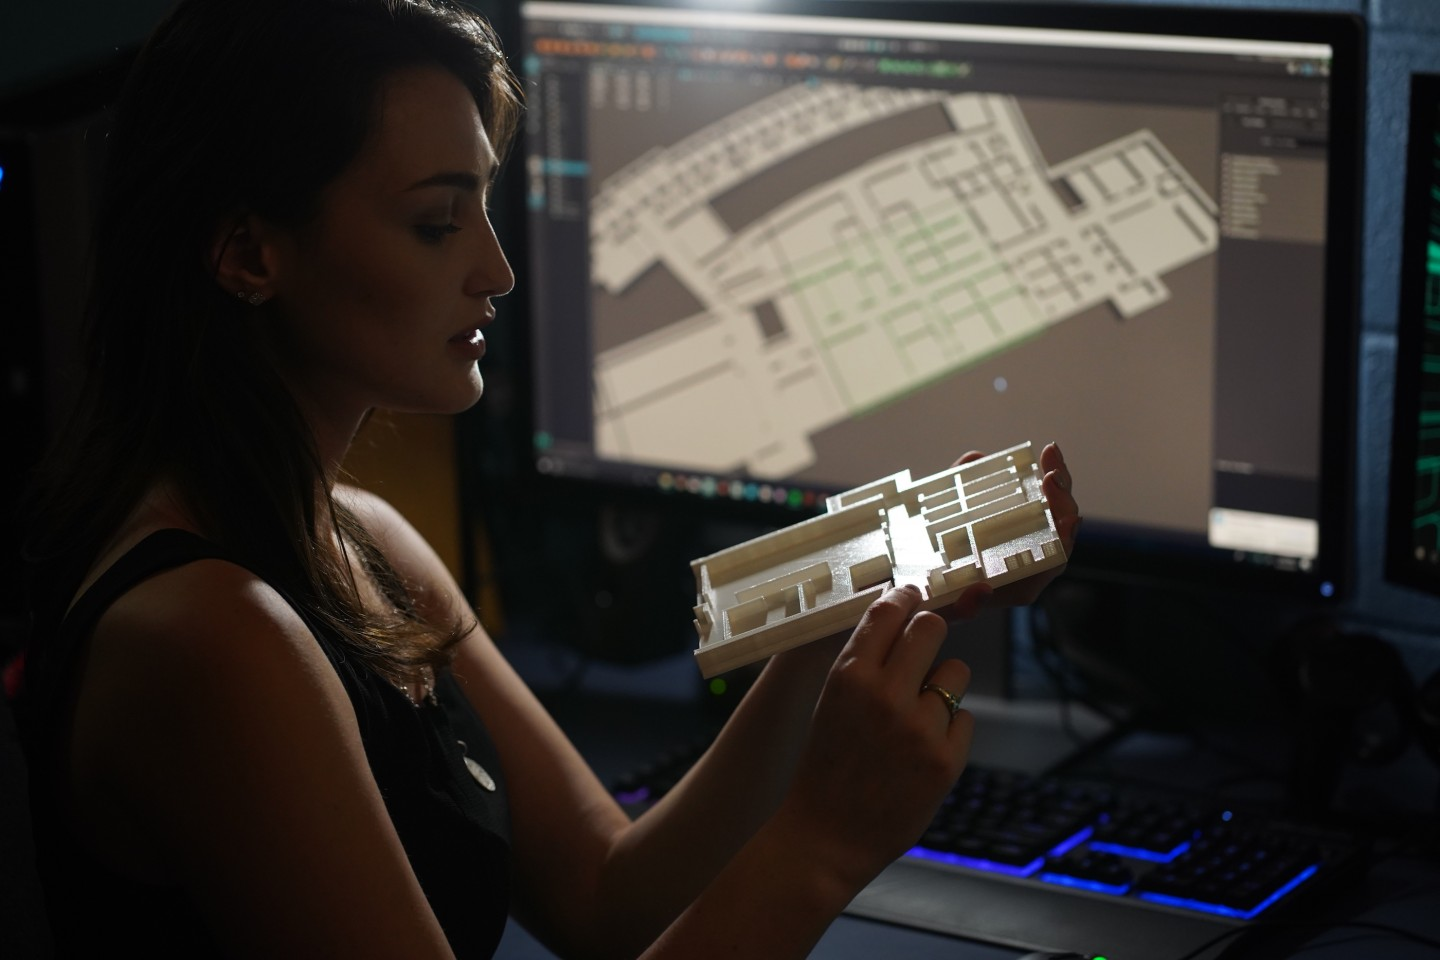 A student holds a 3D map prototype with a larger scale project on the computer screen in the background.